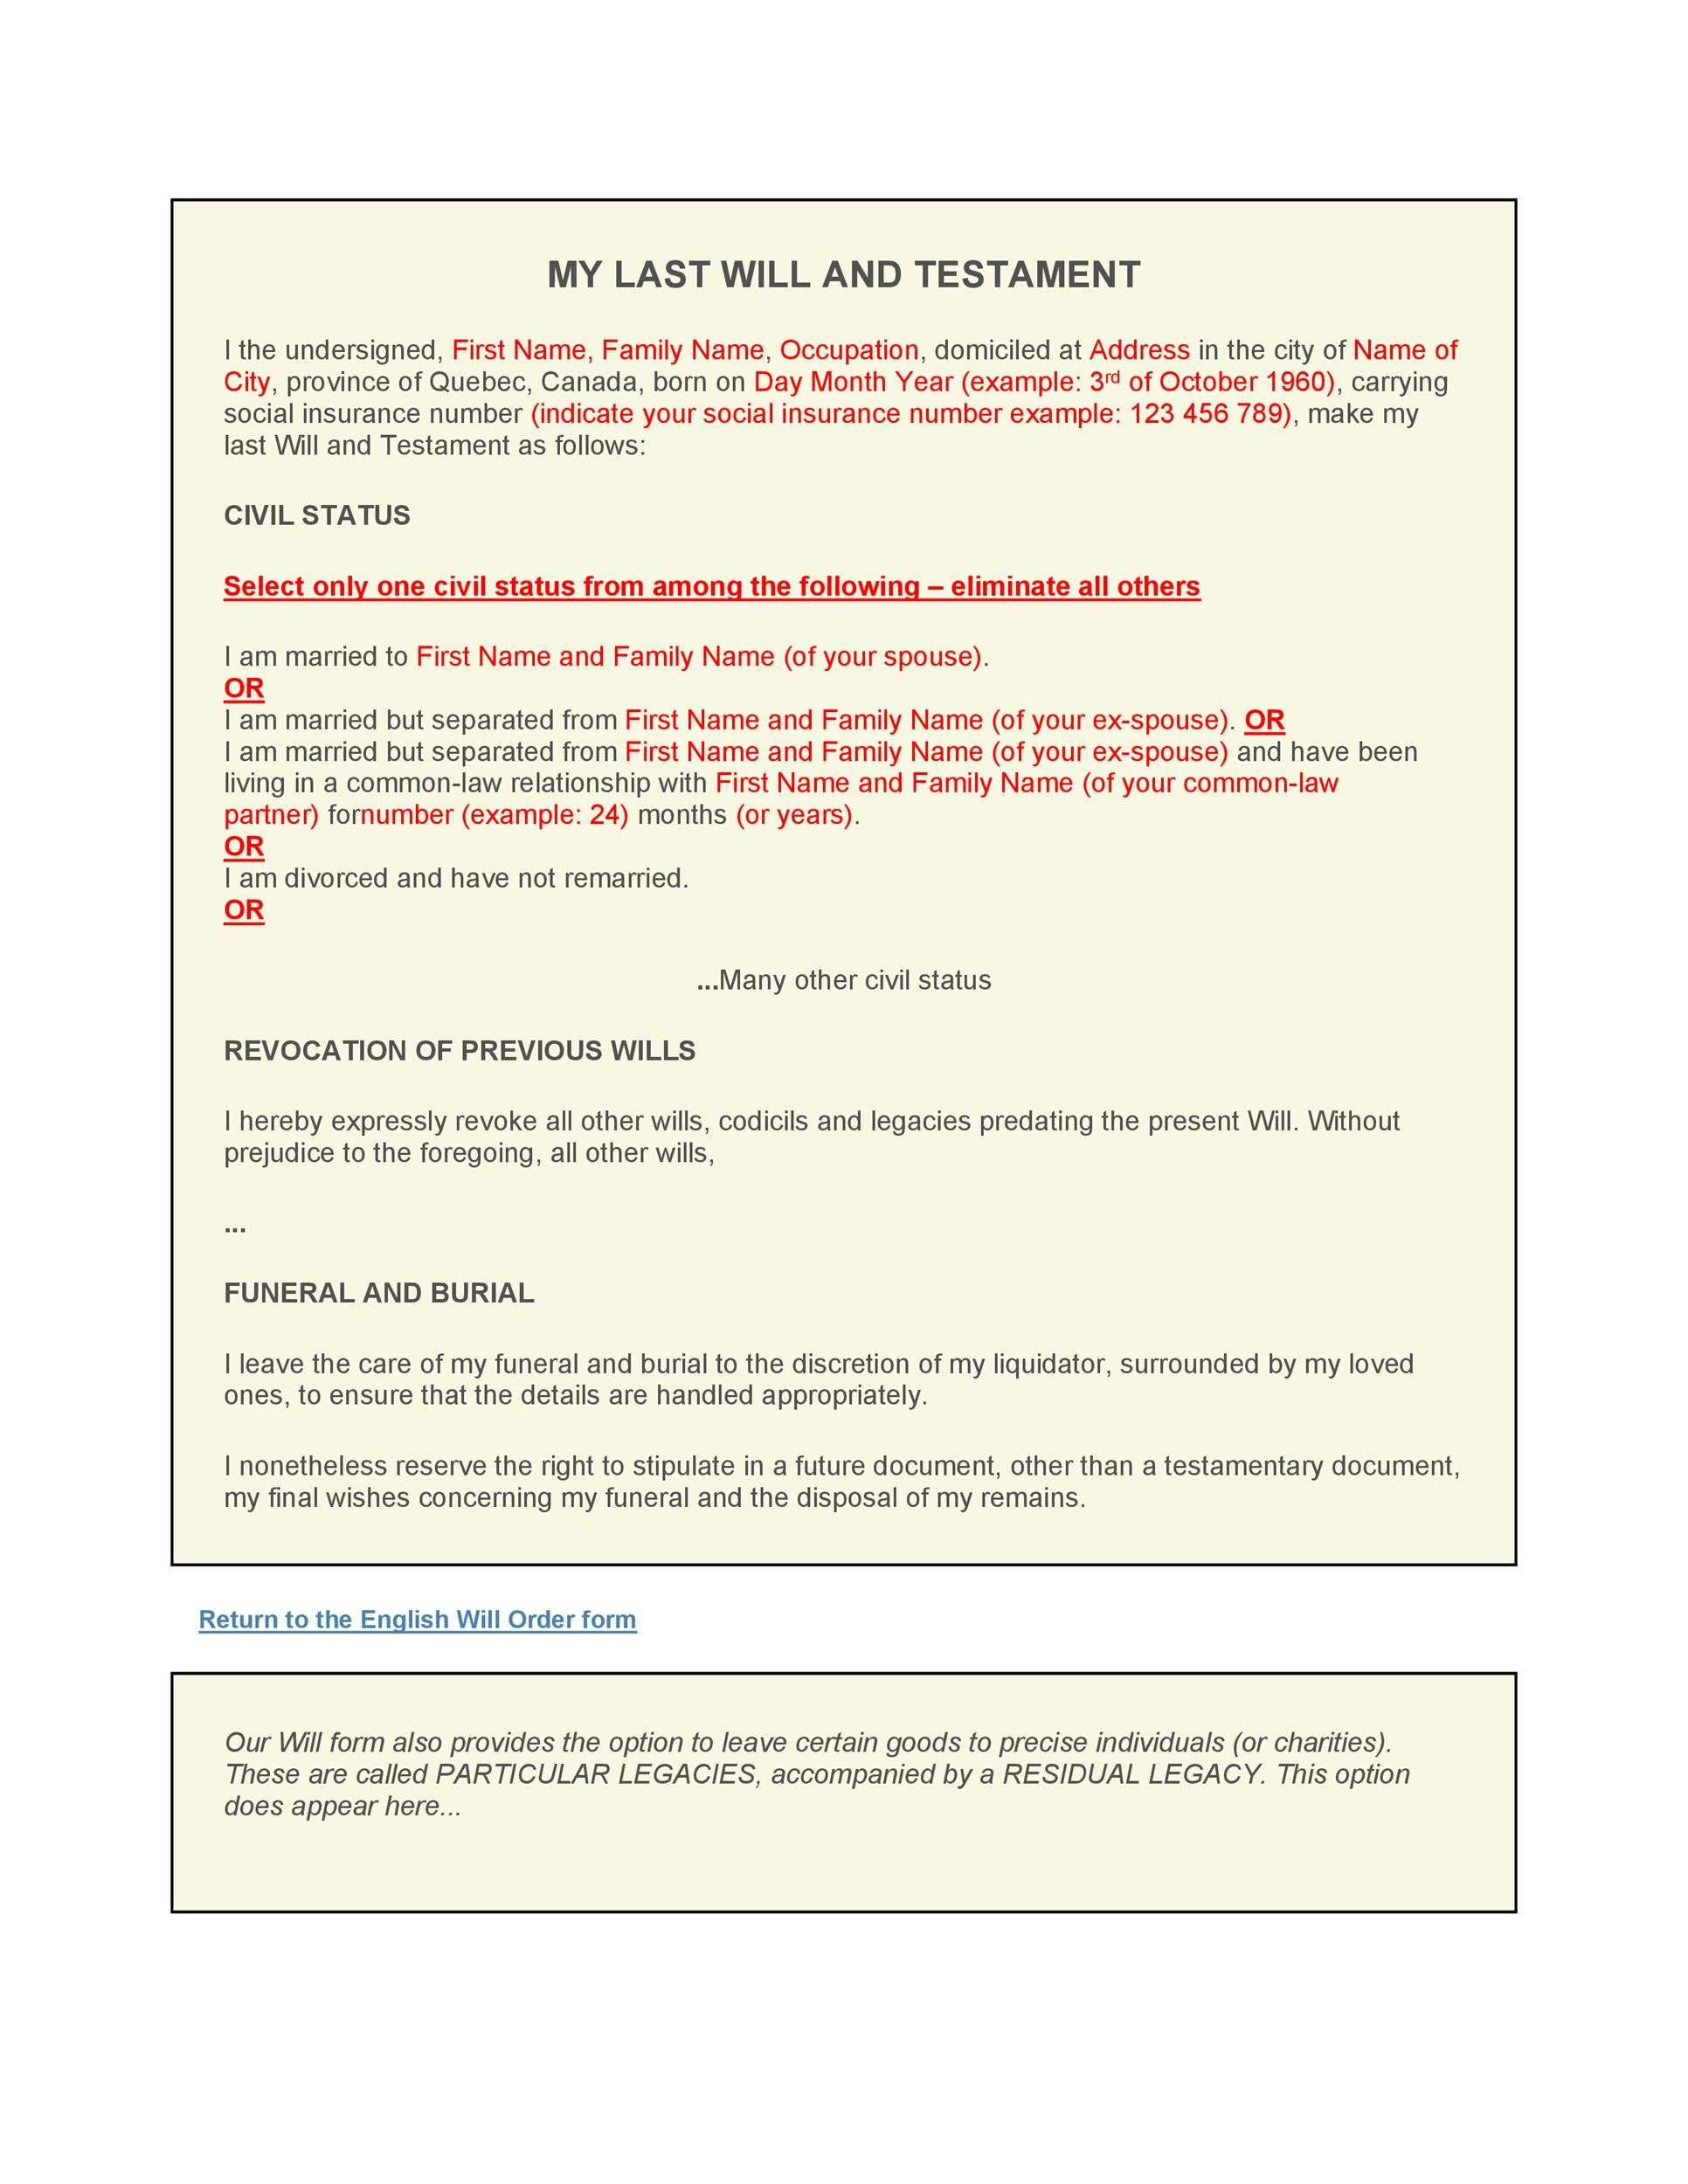 39 Last Will And Testament Forms Templates ᐅ Templatelab